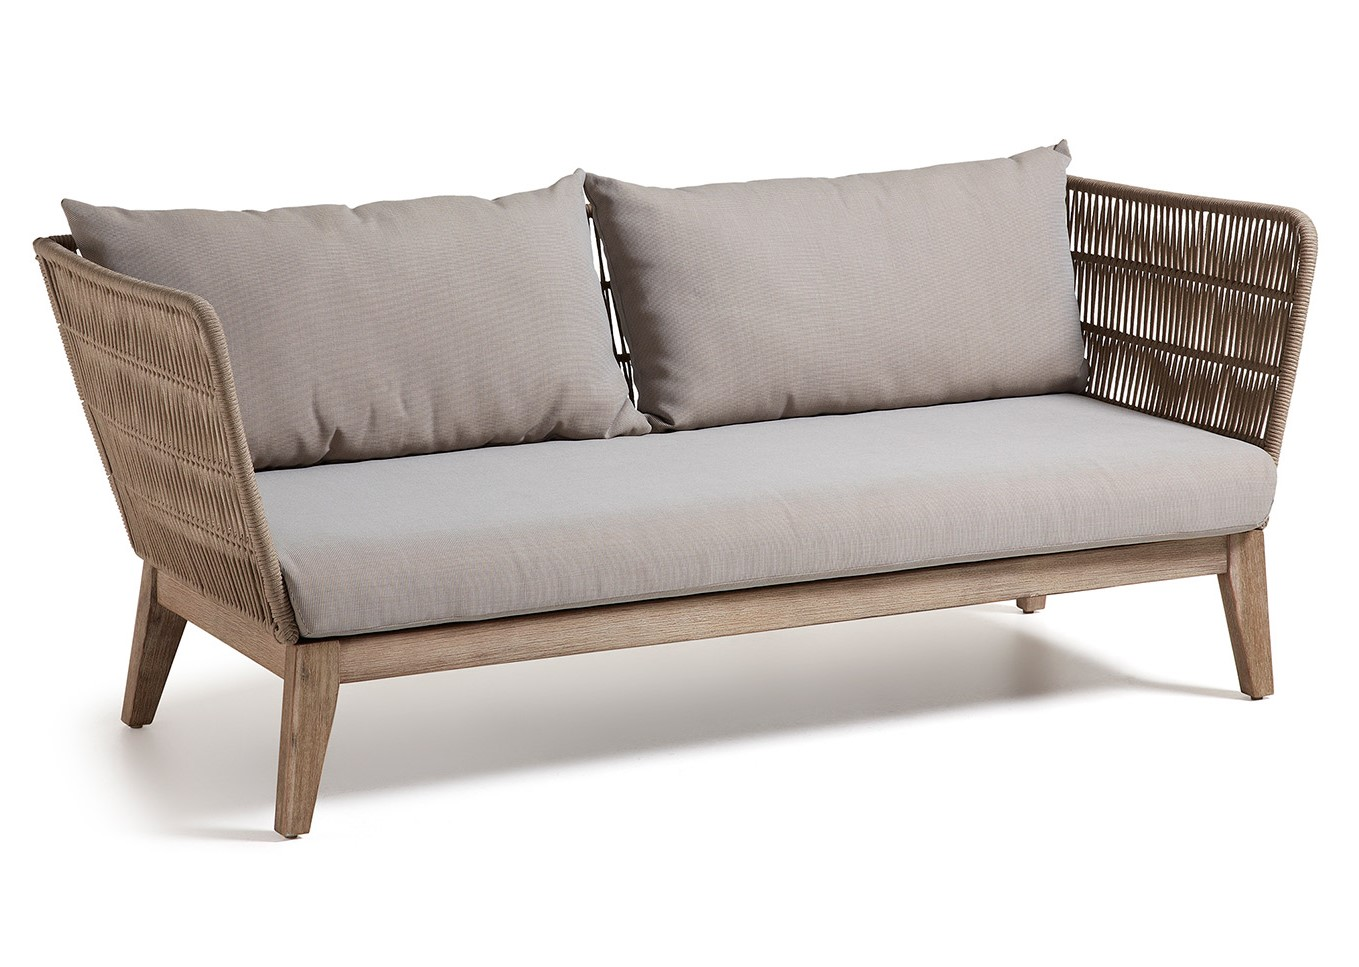 Sofa exterior bellano en for Sofa exterior oferta